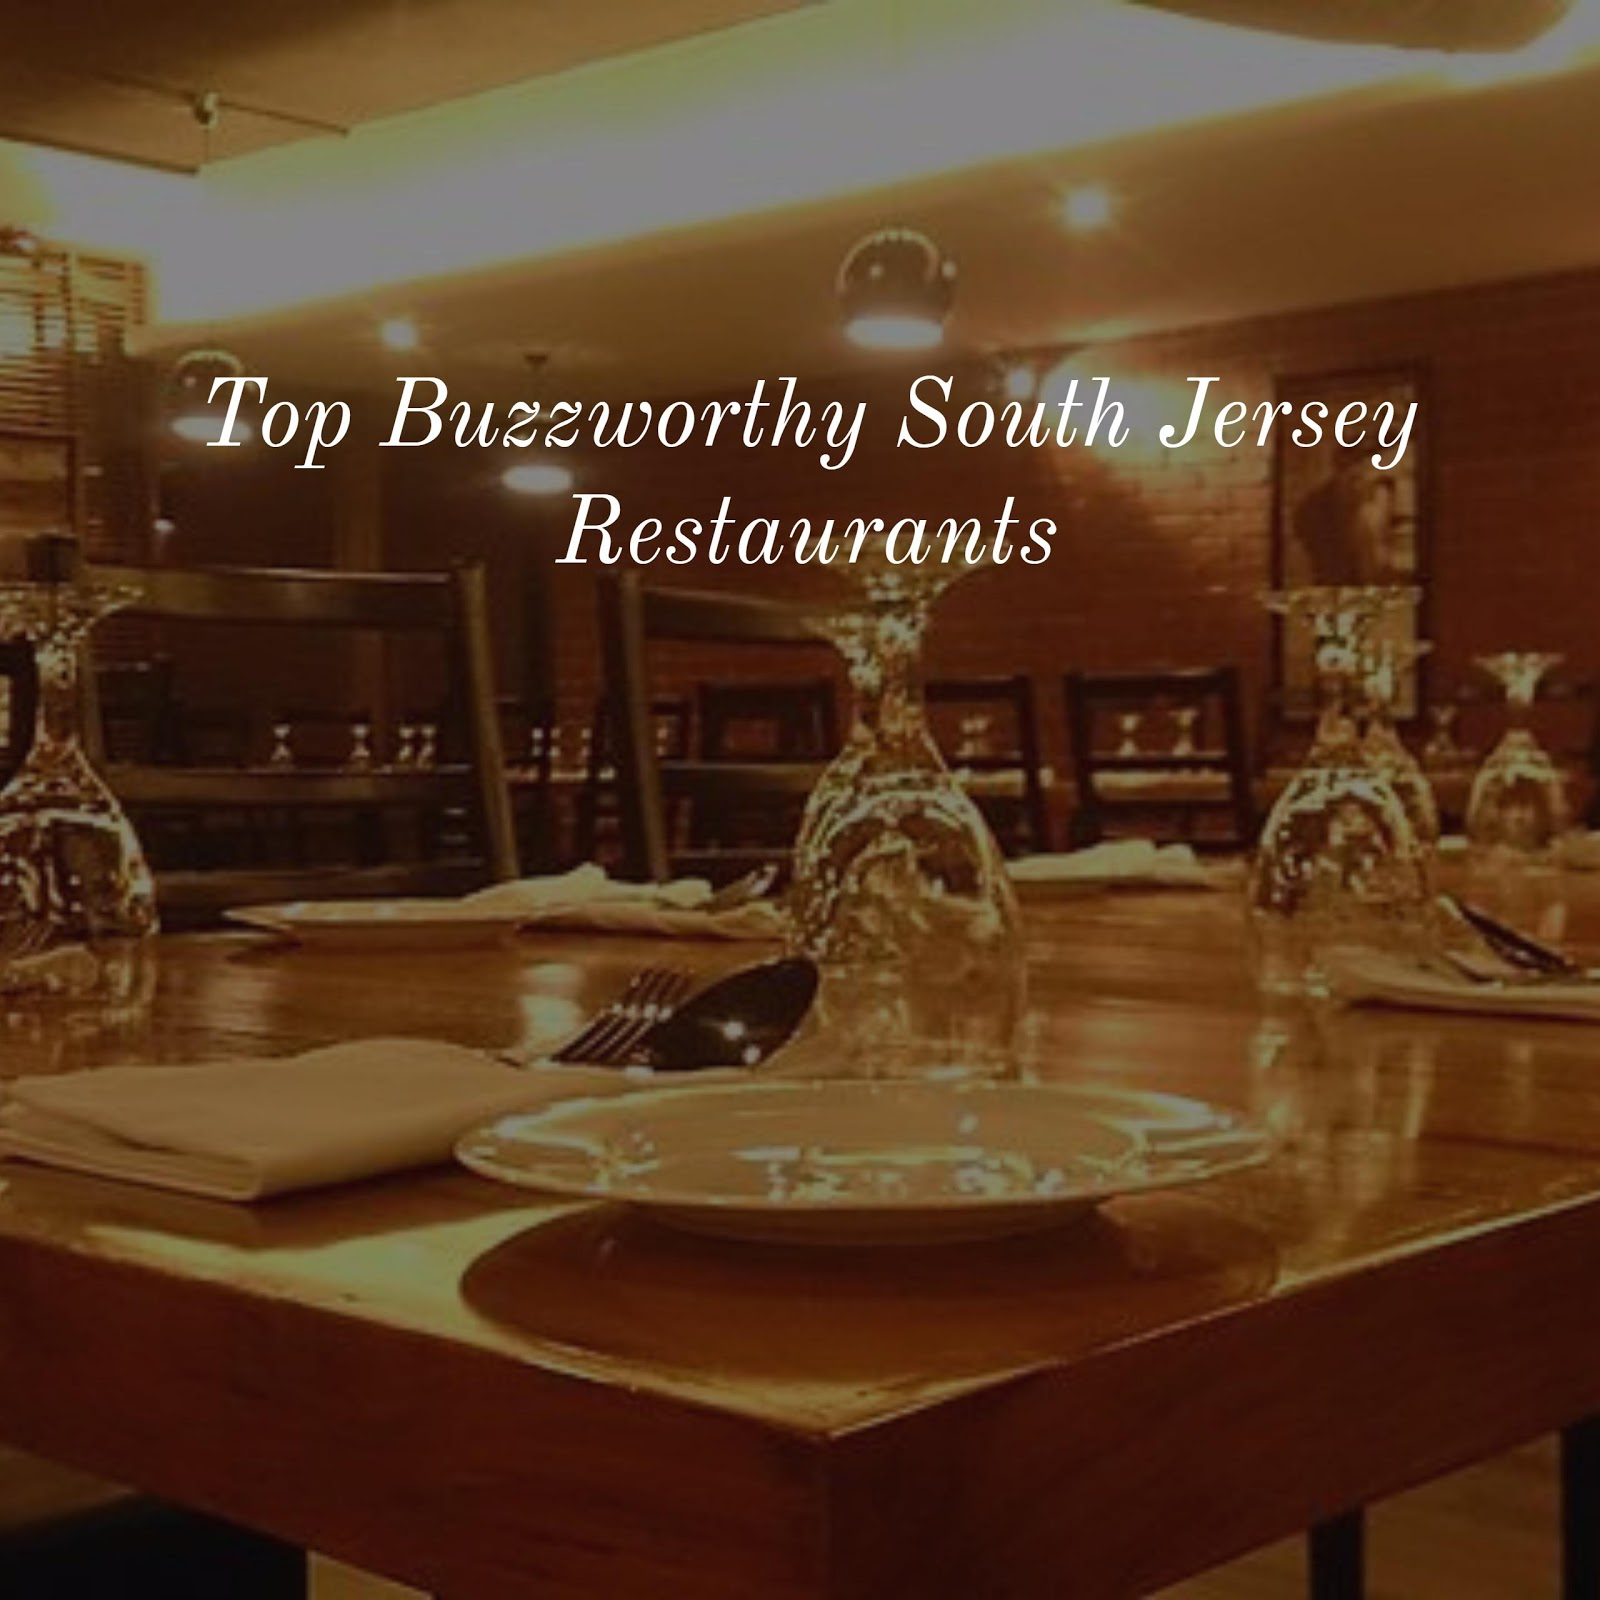 Top Buzzworthy South Jersey Restaurants Anne E Koons Your Local Real Estate Expert